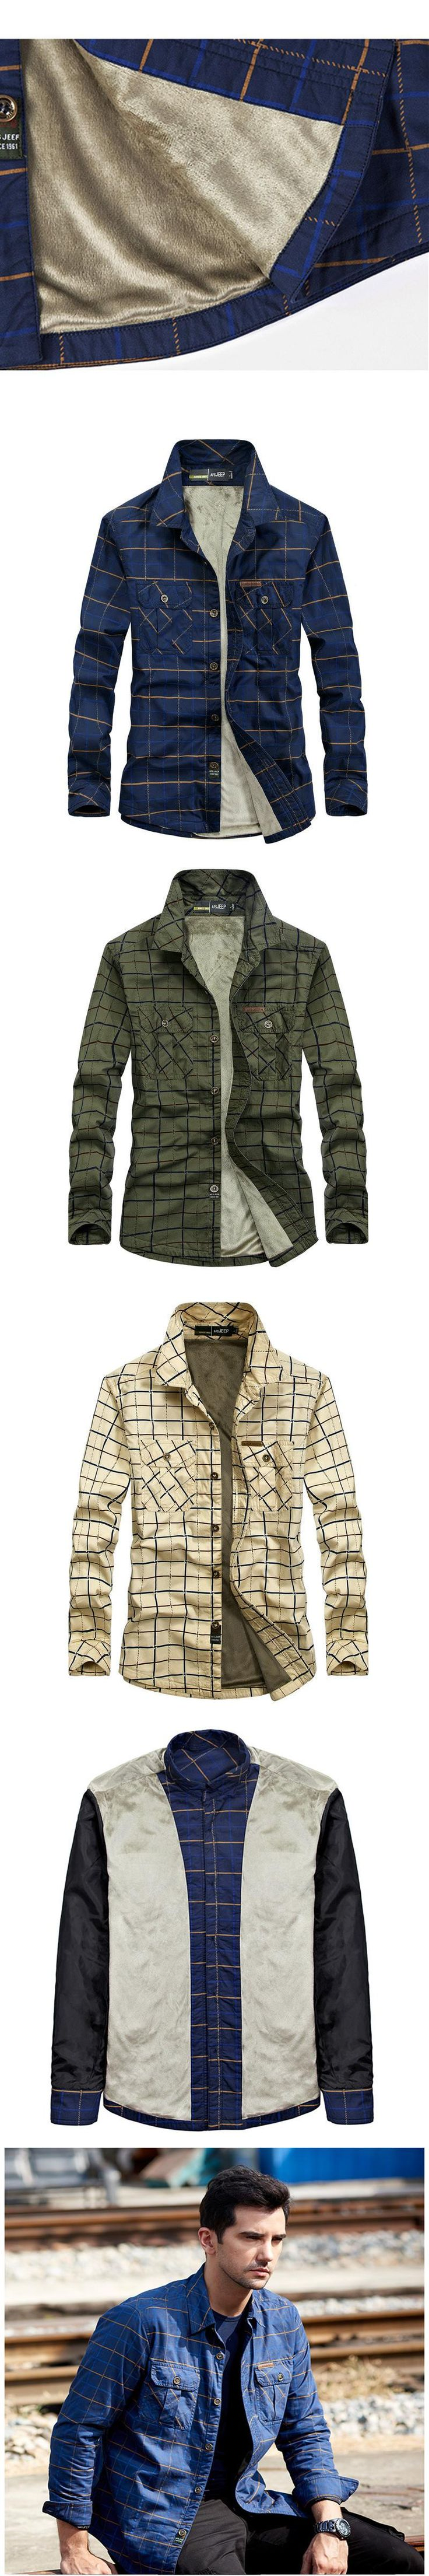 Winter Warm Fleece Plaid Casual Shirt Men Long Sleeve Thick Dress Shirts Cotton British Military Army Khaki Clothes 2609A